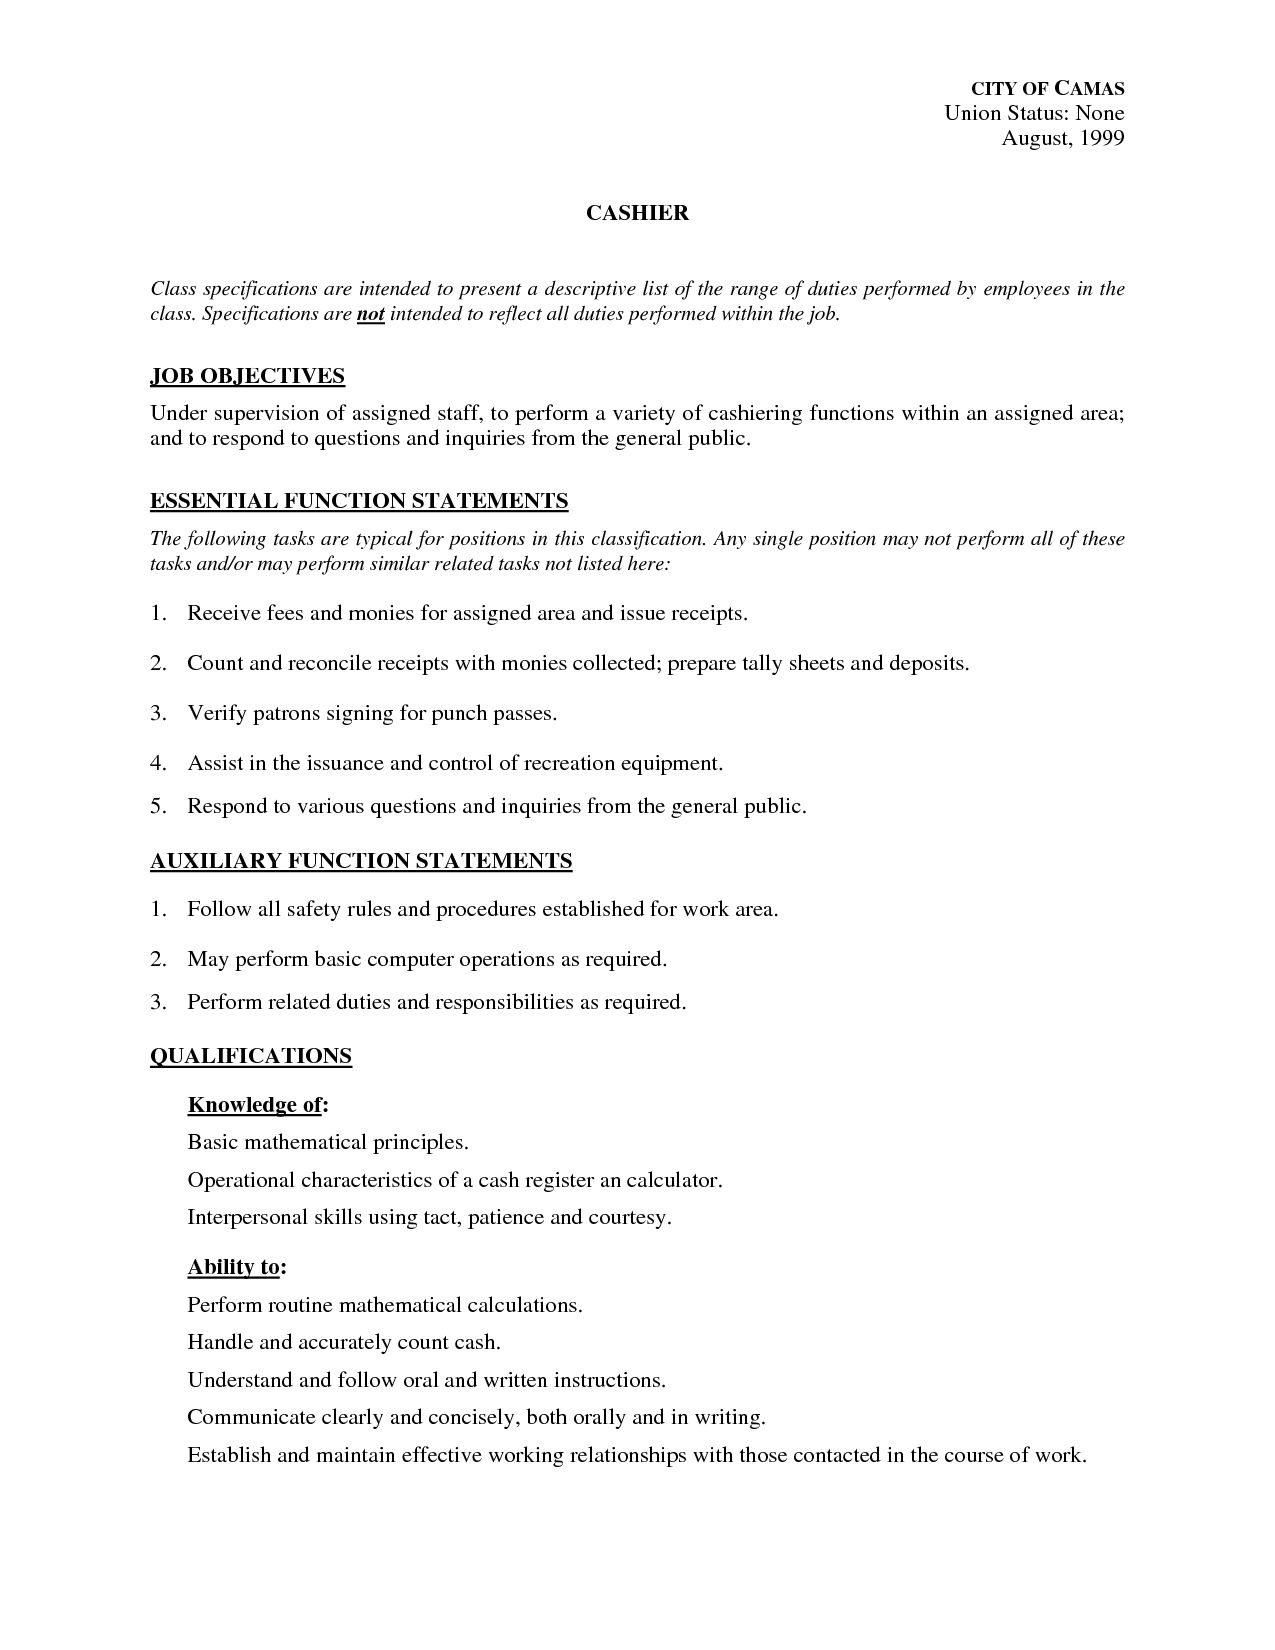 Job Descriptions For Resume Amazing Resume Examples Job Duties  Resume Examples